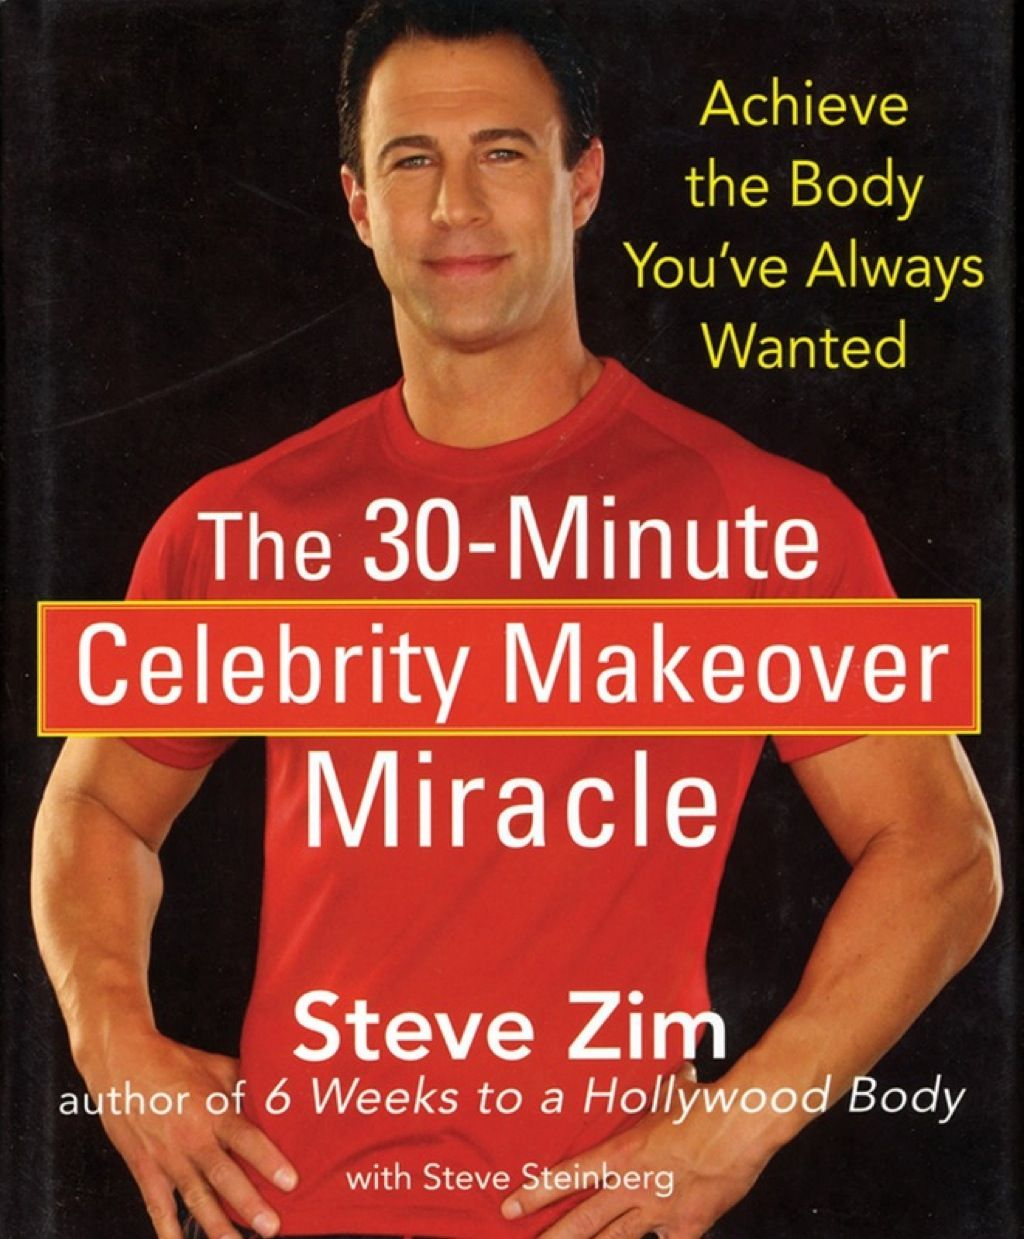 Steve Zim Workout Plan Pdf